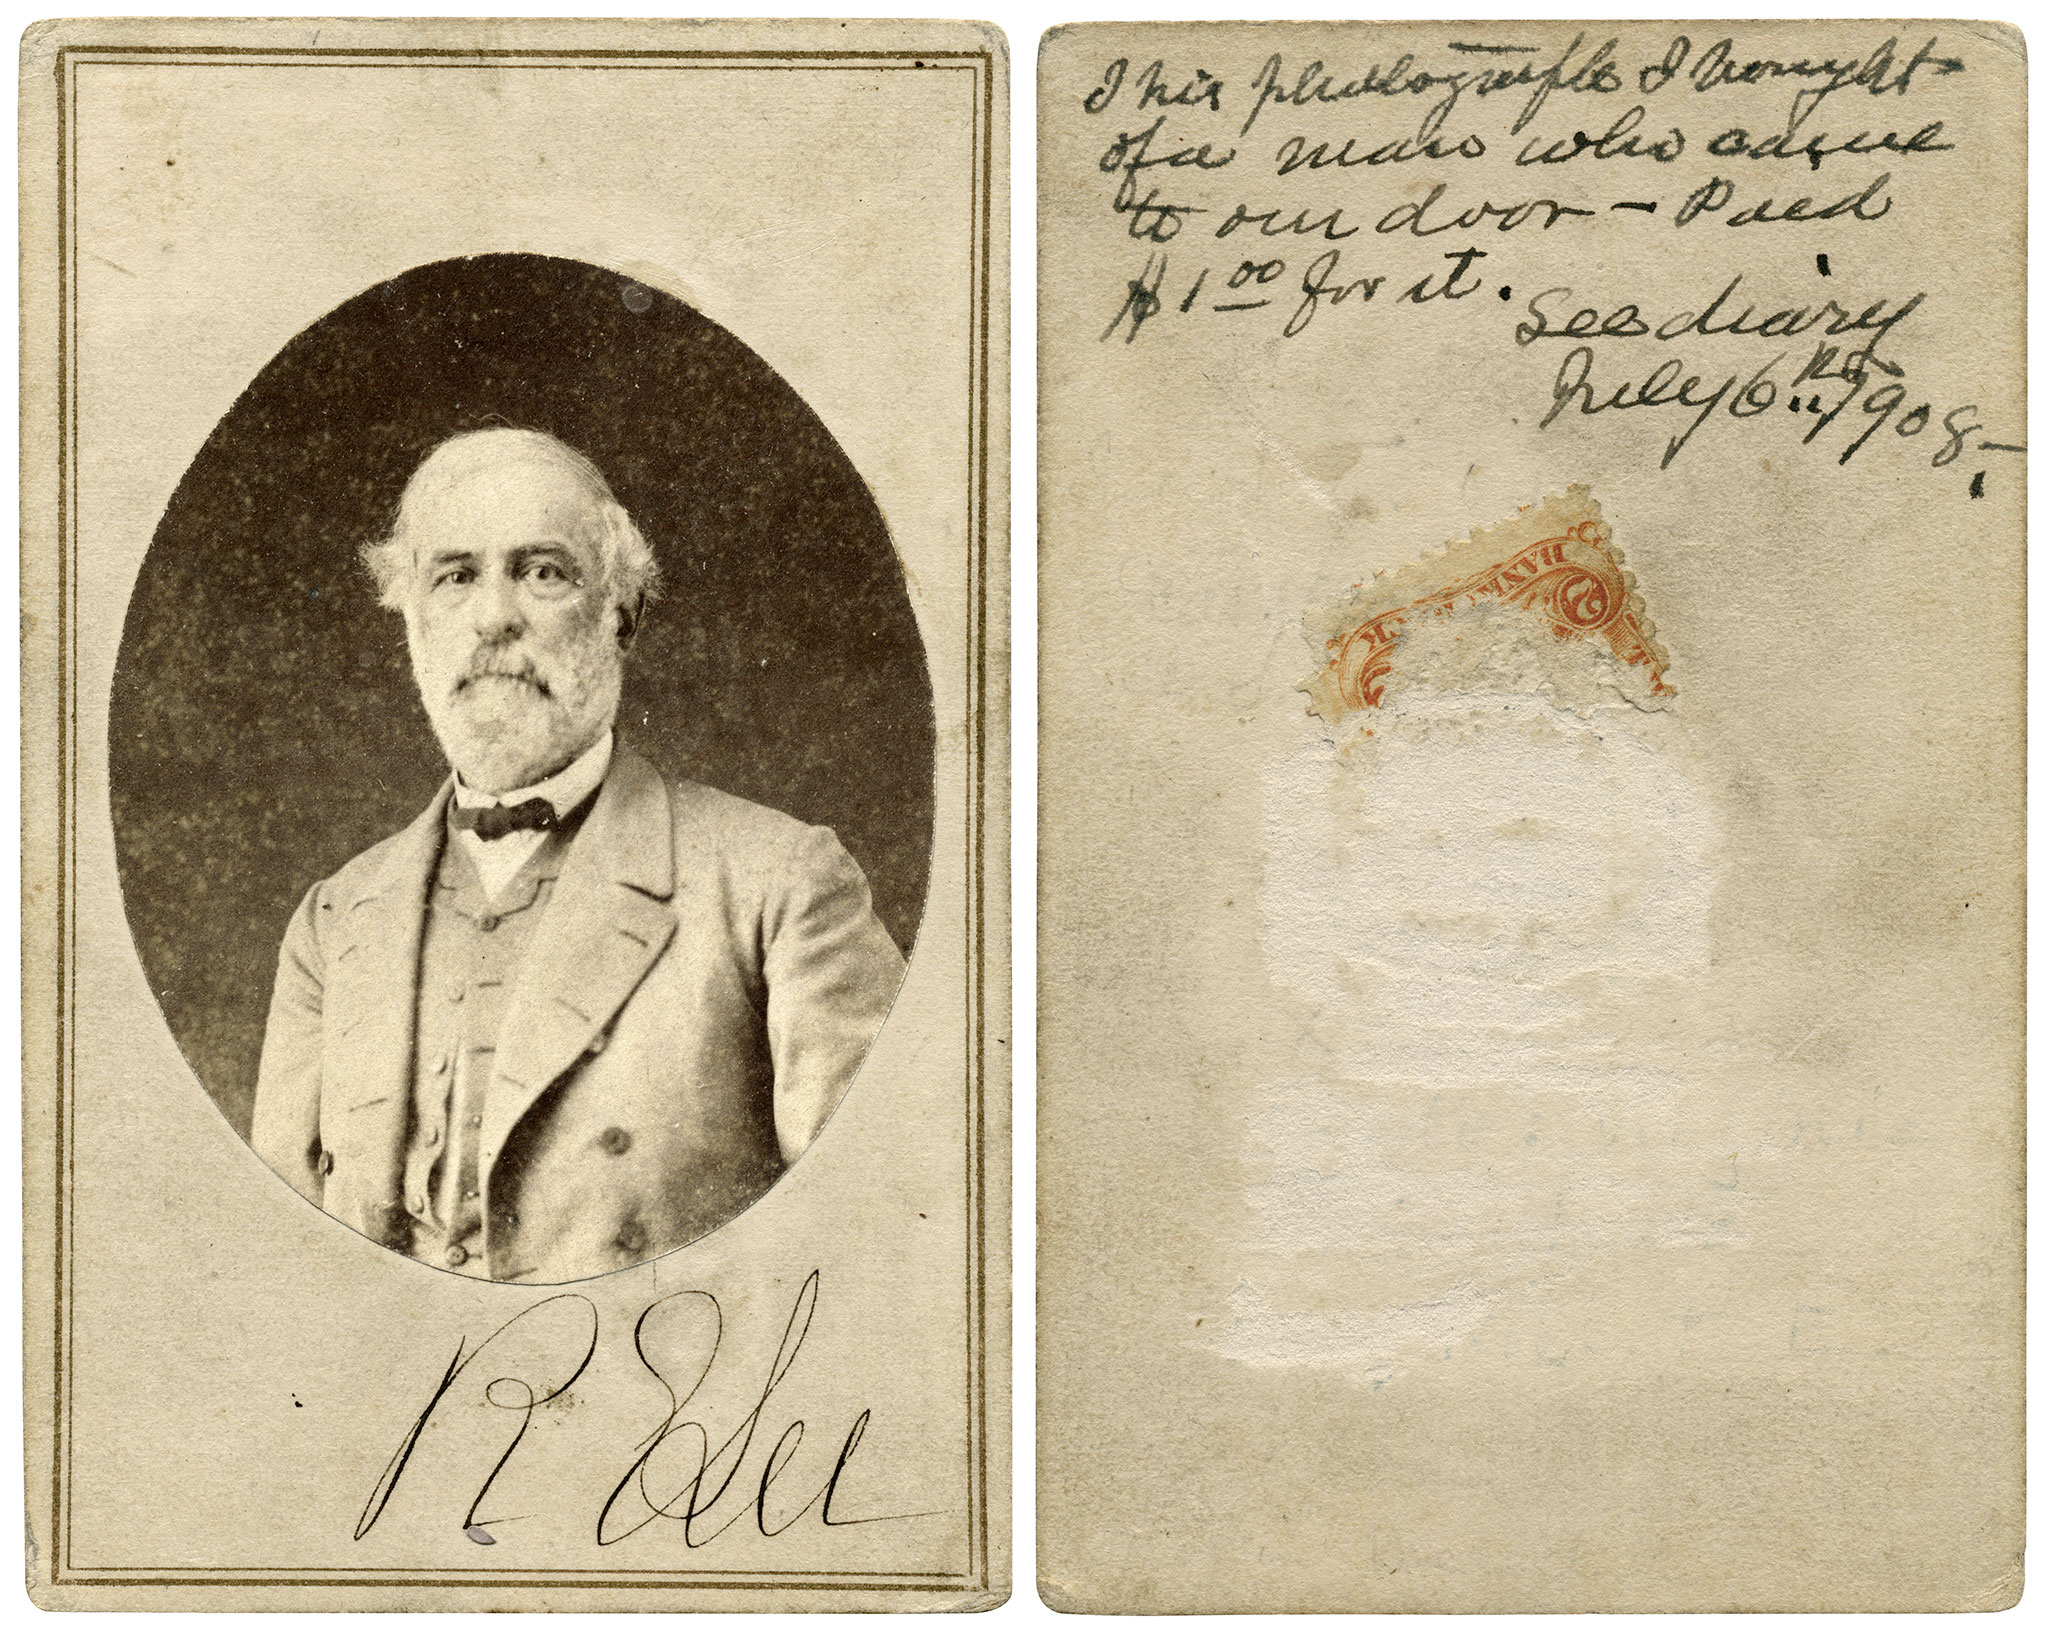 """Lee wears his old uniform coat without military buttons in this portrait. On the back is a poignant note, """"This photograph I bought of a man who came to our door—Paid $1.00 for it. See diary July 6th 1908."""" The man might have been a down-on-his-luck Confederate veteran who reluctantly parted with this precious memento of the war. Though only a fragment of the revenue stamp remains, another carte de visite of the same pose has the stamp cancelled by White & Kelly. Author's collection."""